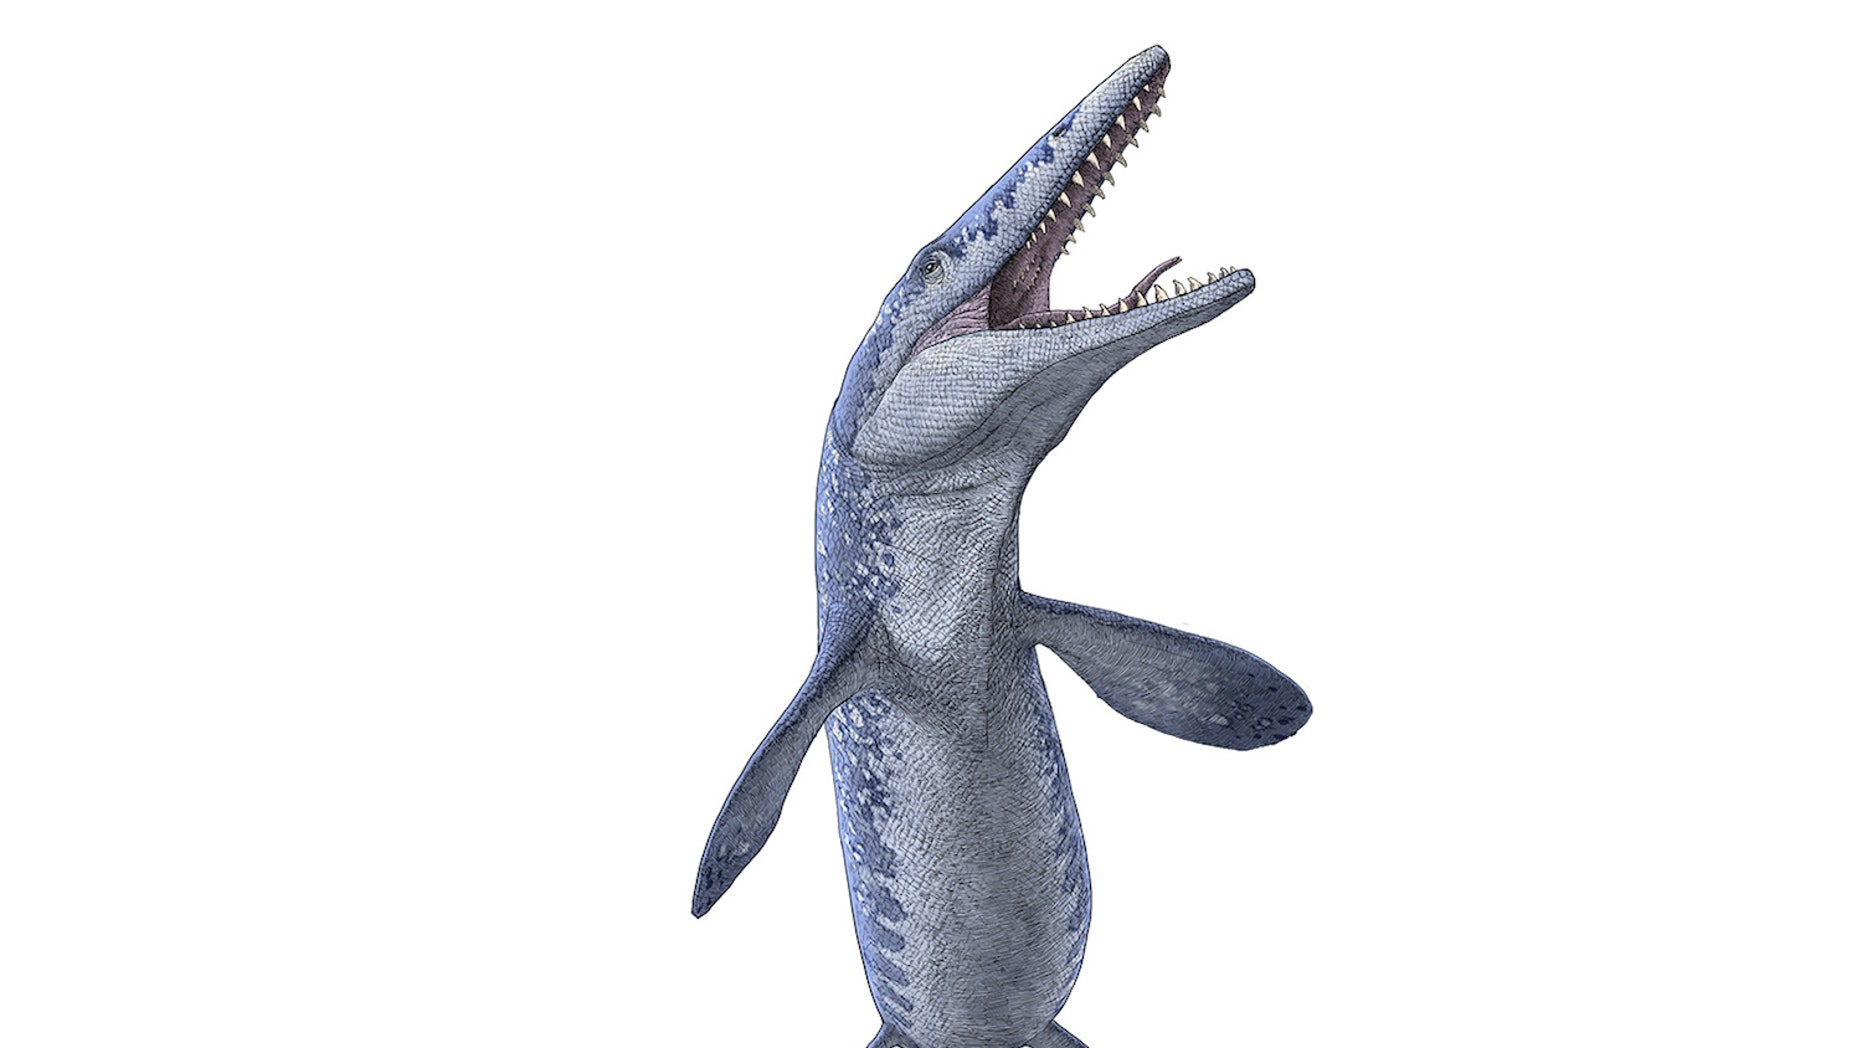 An painting of Tylosaurus, a mosasaur that lived during a dinosaur age.